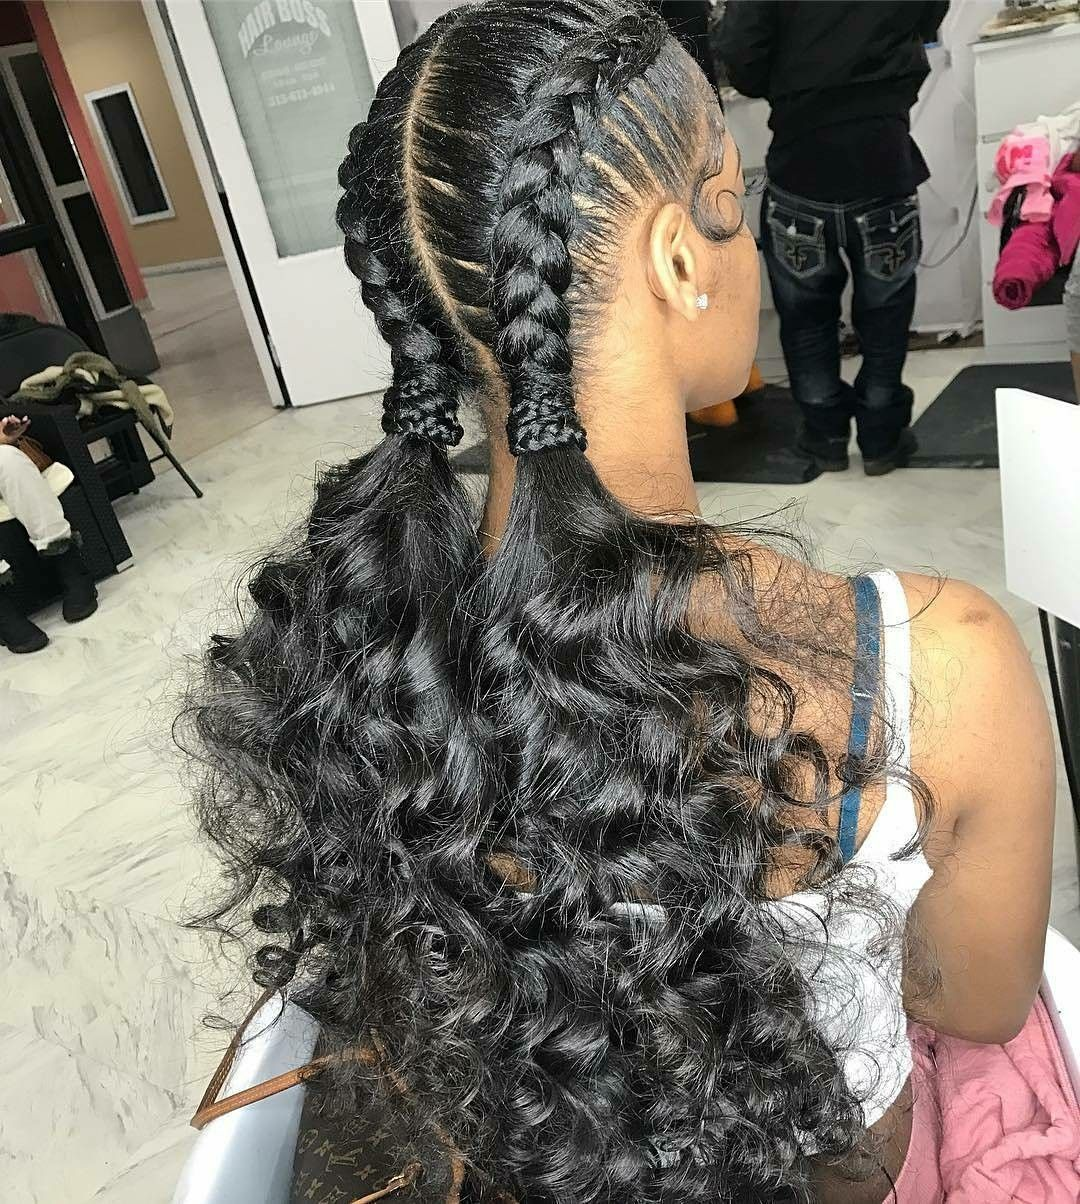 Best Braids Hairstyle You Like Braidedhairstyles Feed In Braids Hairstyles Braided Hairstyles Weave Hairstyles Braided